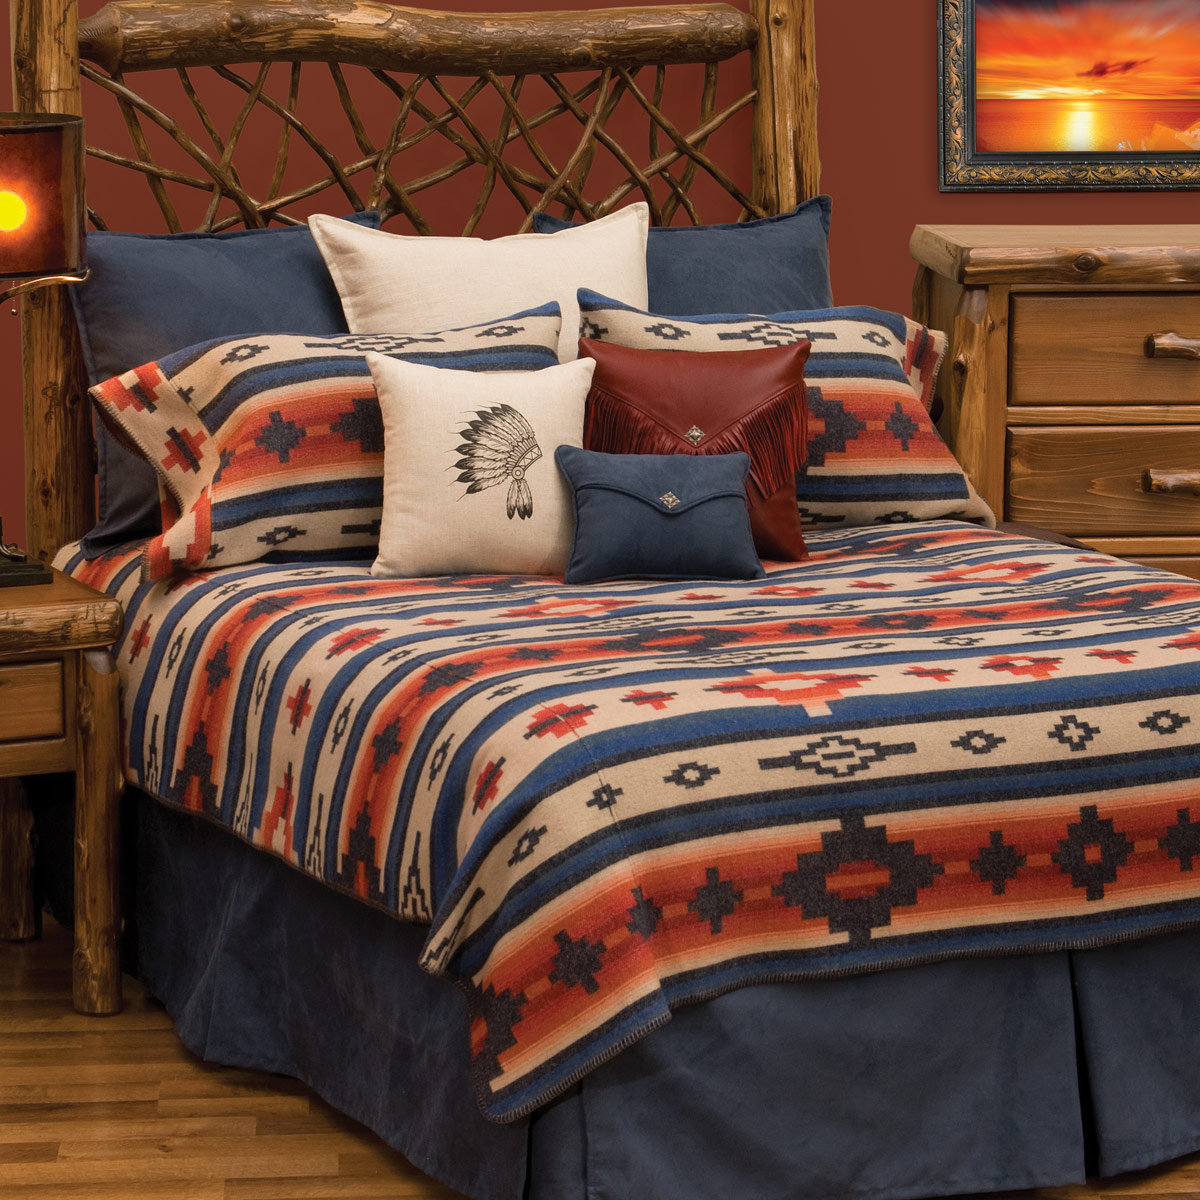 Black Forest Decor Redrock canyon deluxe bed set - queen